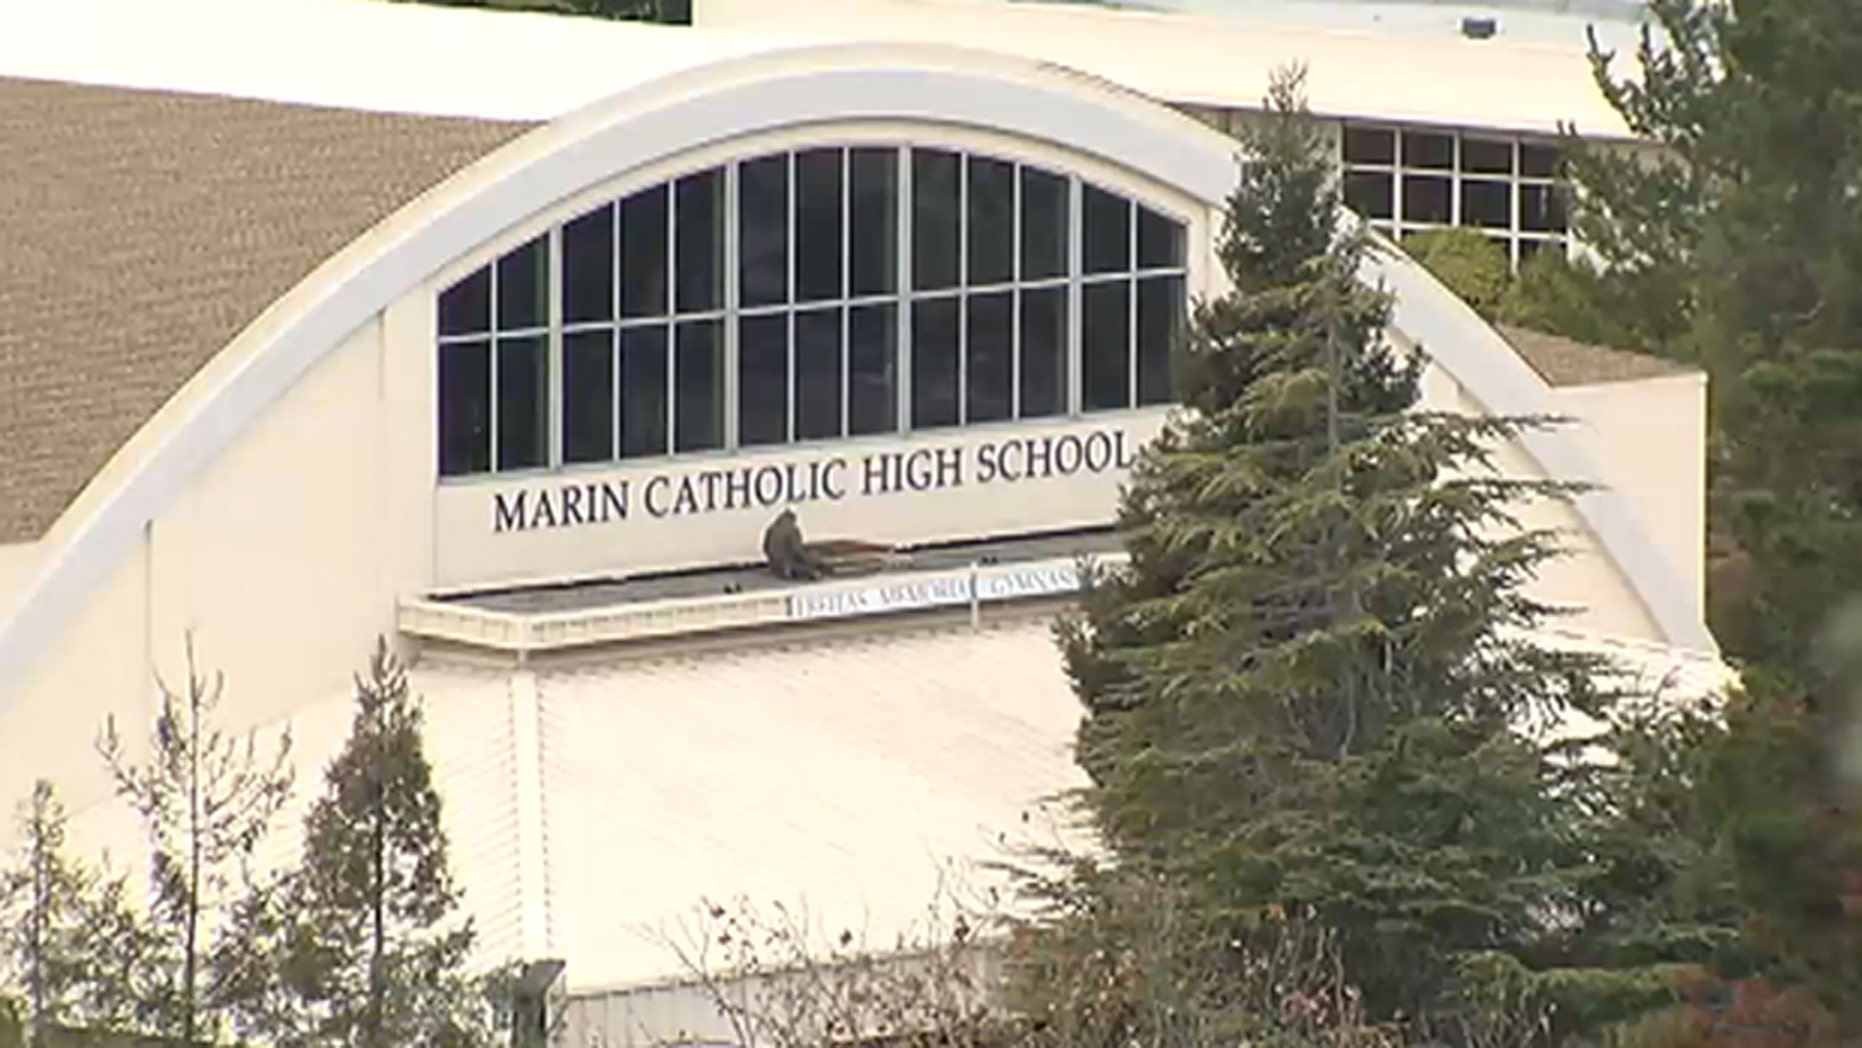 Marin Catholic High School in Kentfield, California.